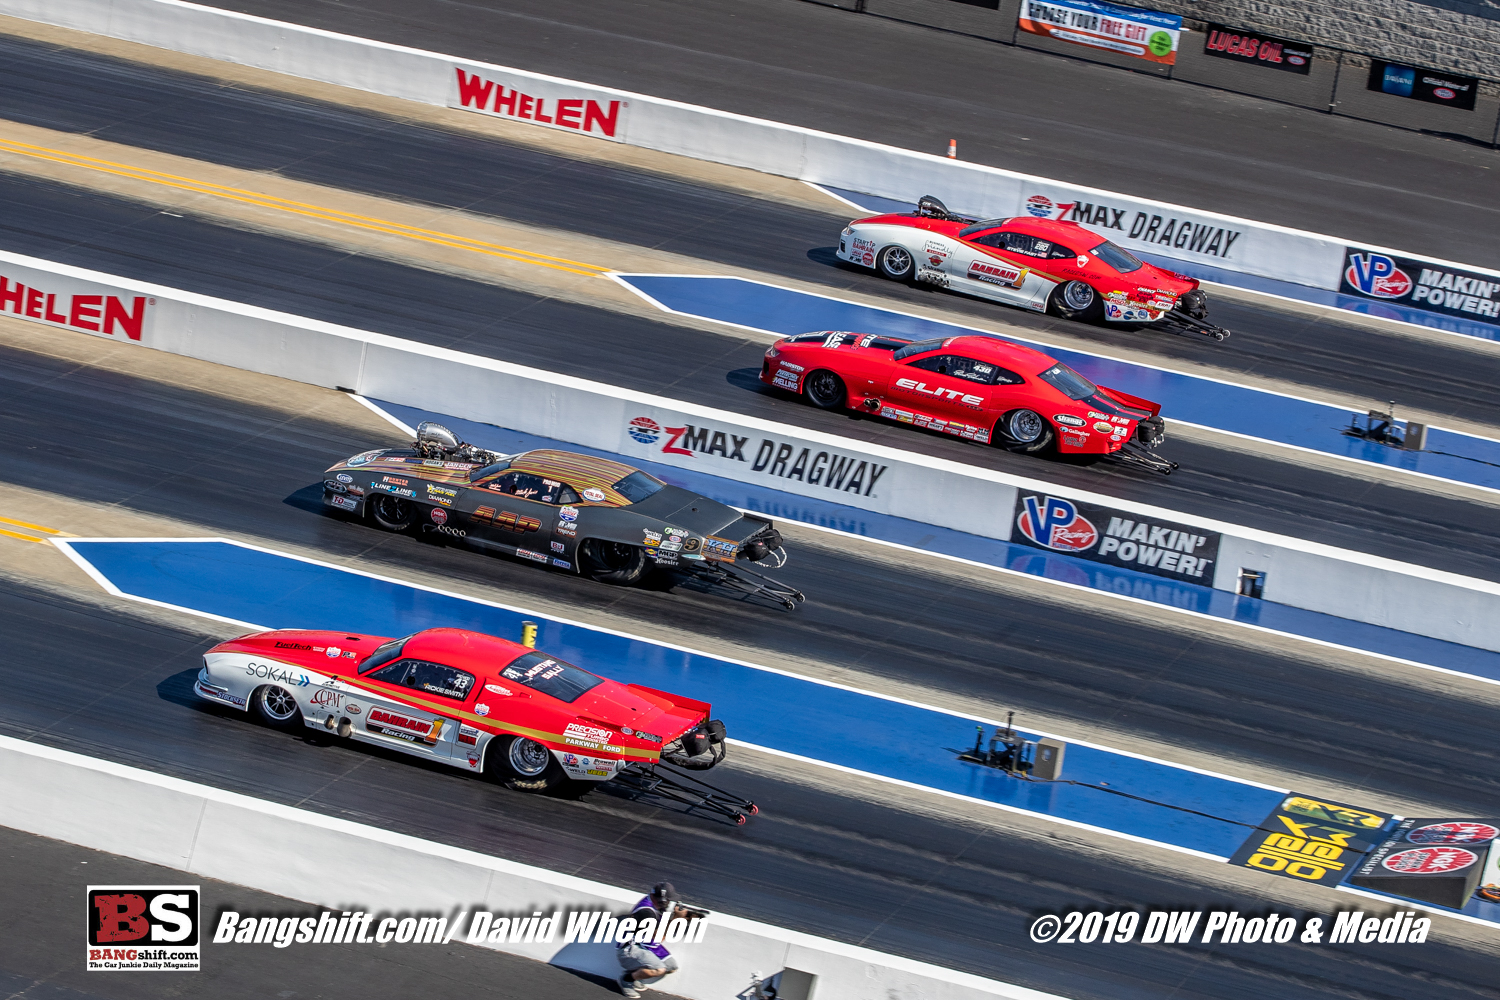 2019 NGK NHRA 4-Wide Nationals Coverage: Pro Mod Quads! The Doorslammers Go Four Wide